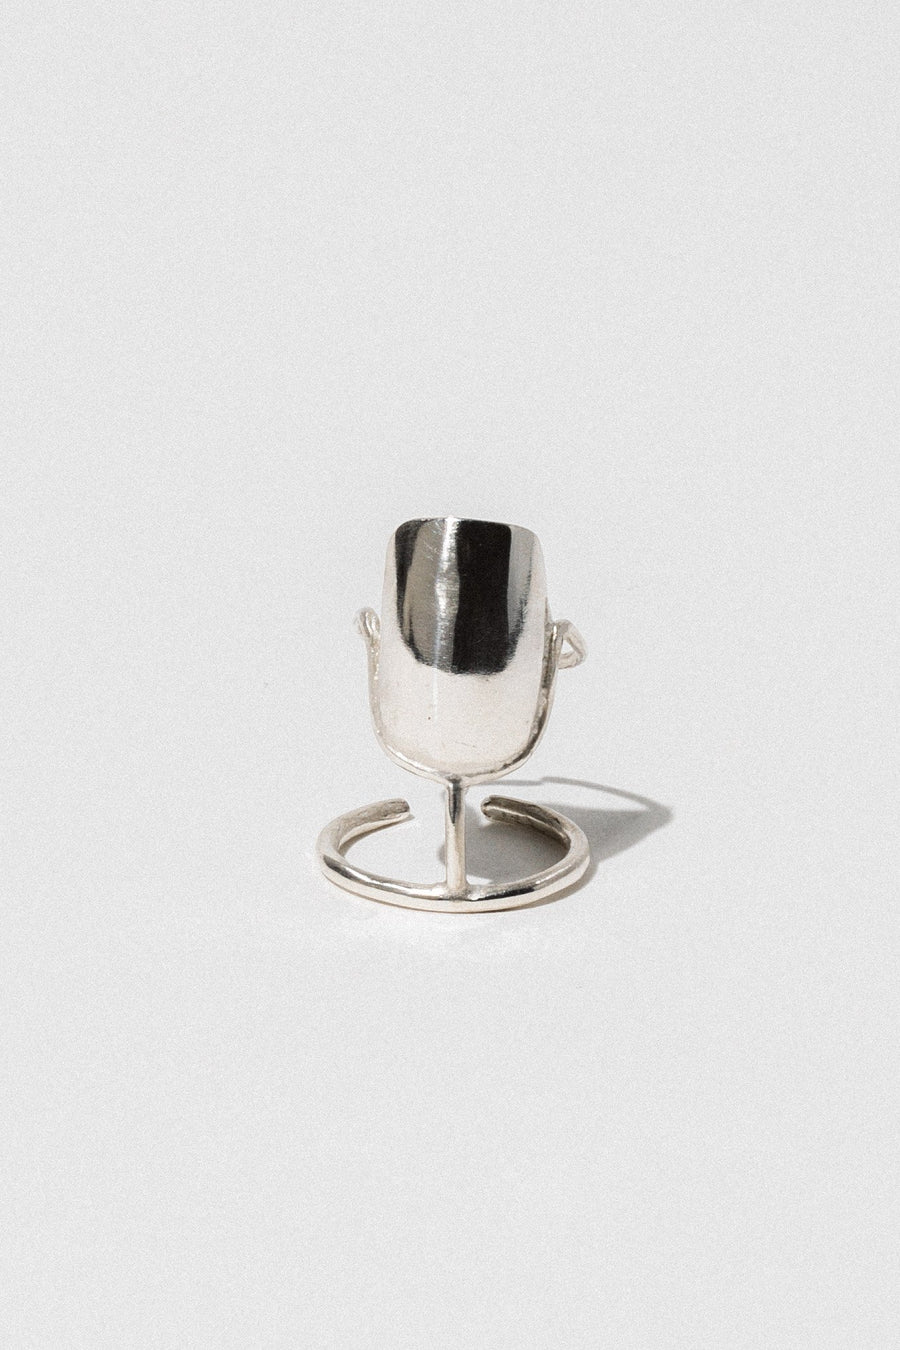 Aziza Handcrafted Jewelry Open Size / Silver Bastet Ring